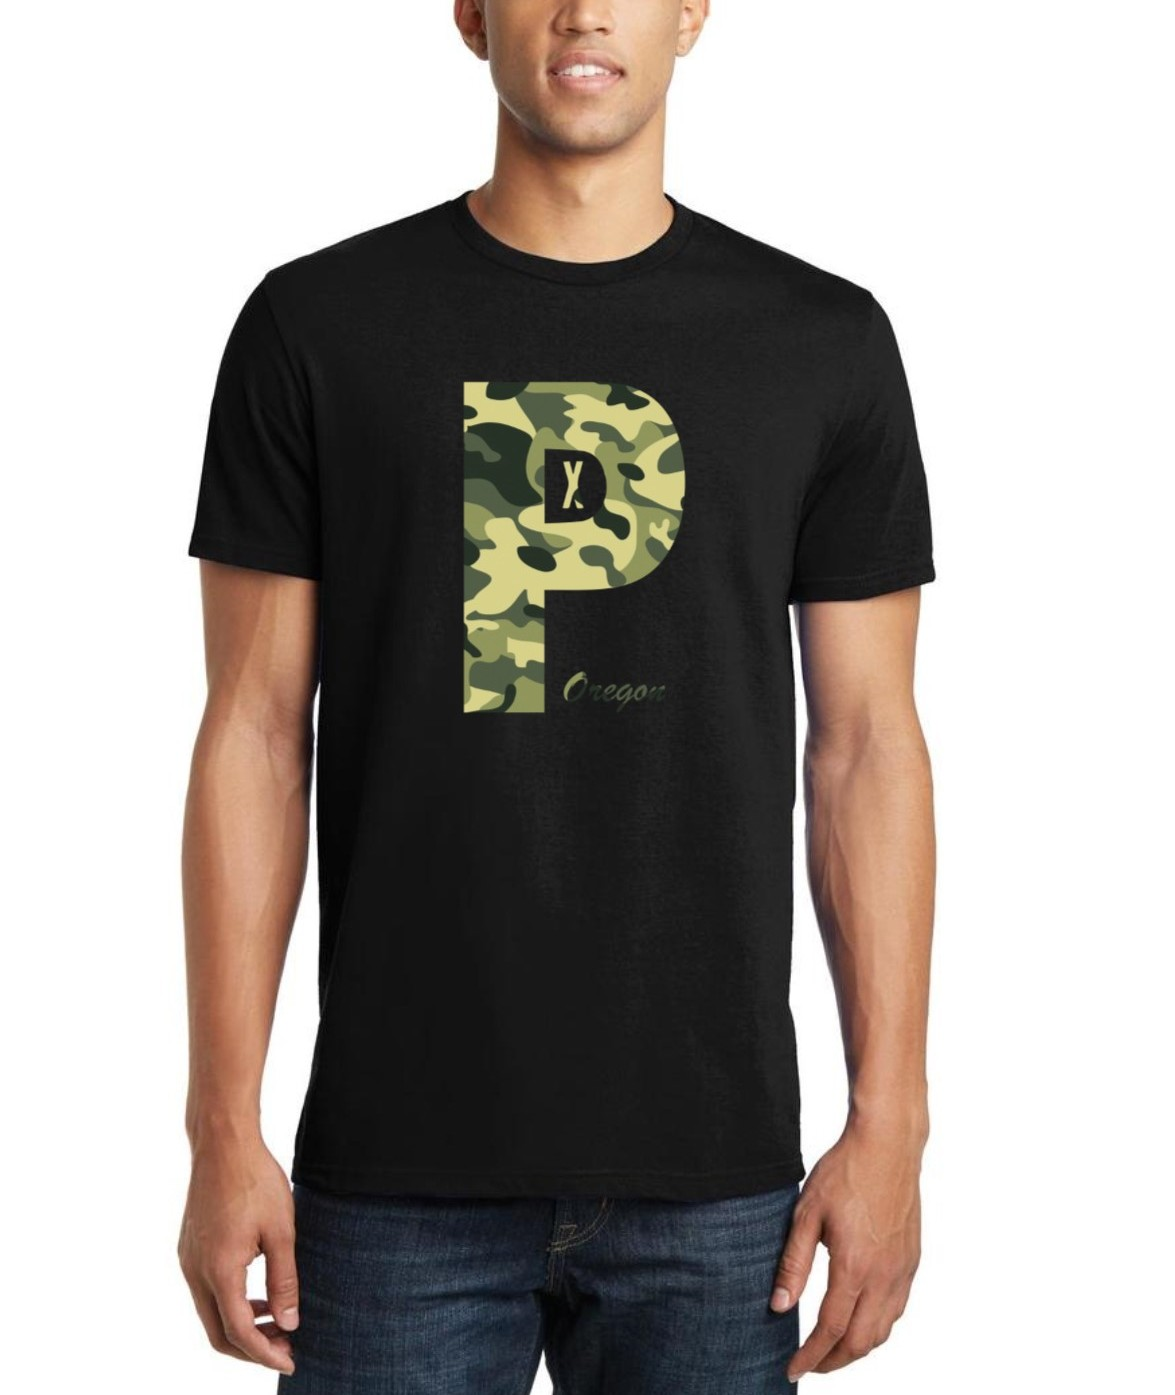 PDX Oregon - Camo - T Shirt